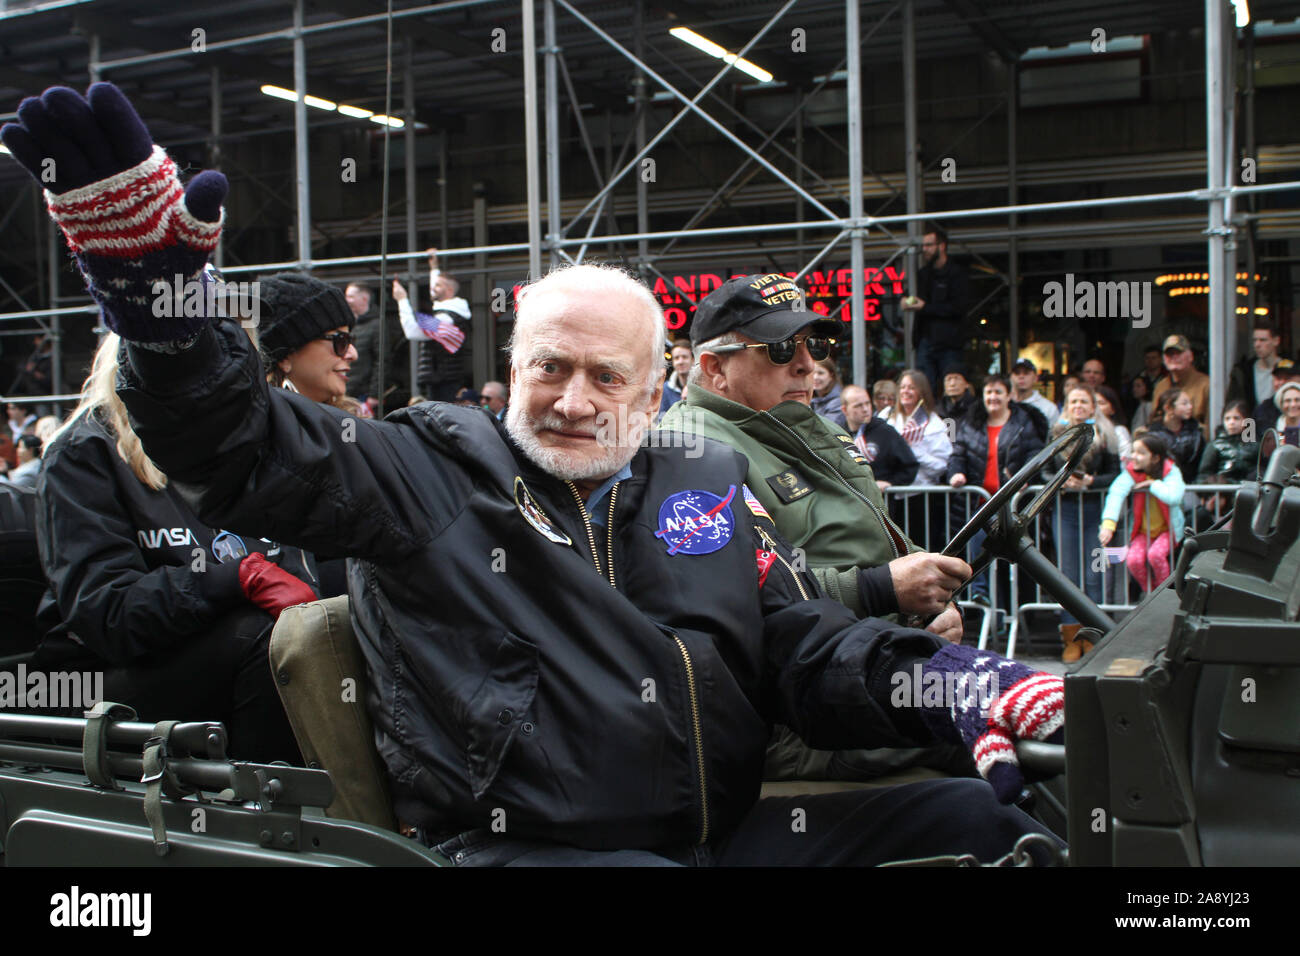 November 11, 2019, New York, New York, USA: President Donald Trump speaks at the 100th Annual Veteran's Day Parade in N.Y.C. after his speech there was a moment of .silence and then veterans marched up 5th Ave.Edwin ''Buzz'' Aldrin former Astronaut waves to the crowd. (Credit Image: © Bruce Cotler/Globe Photos via ZUMA Wire) Stock Photo